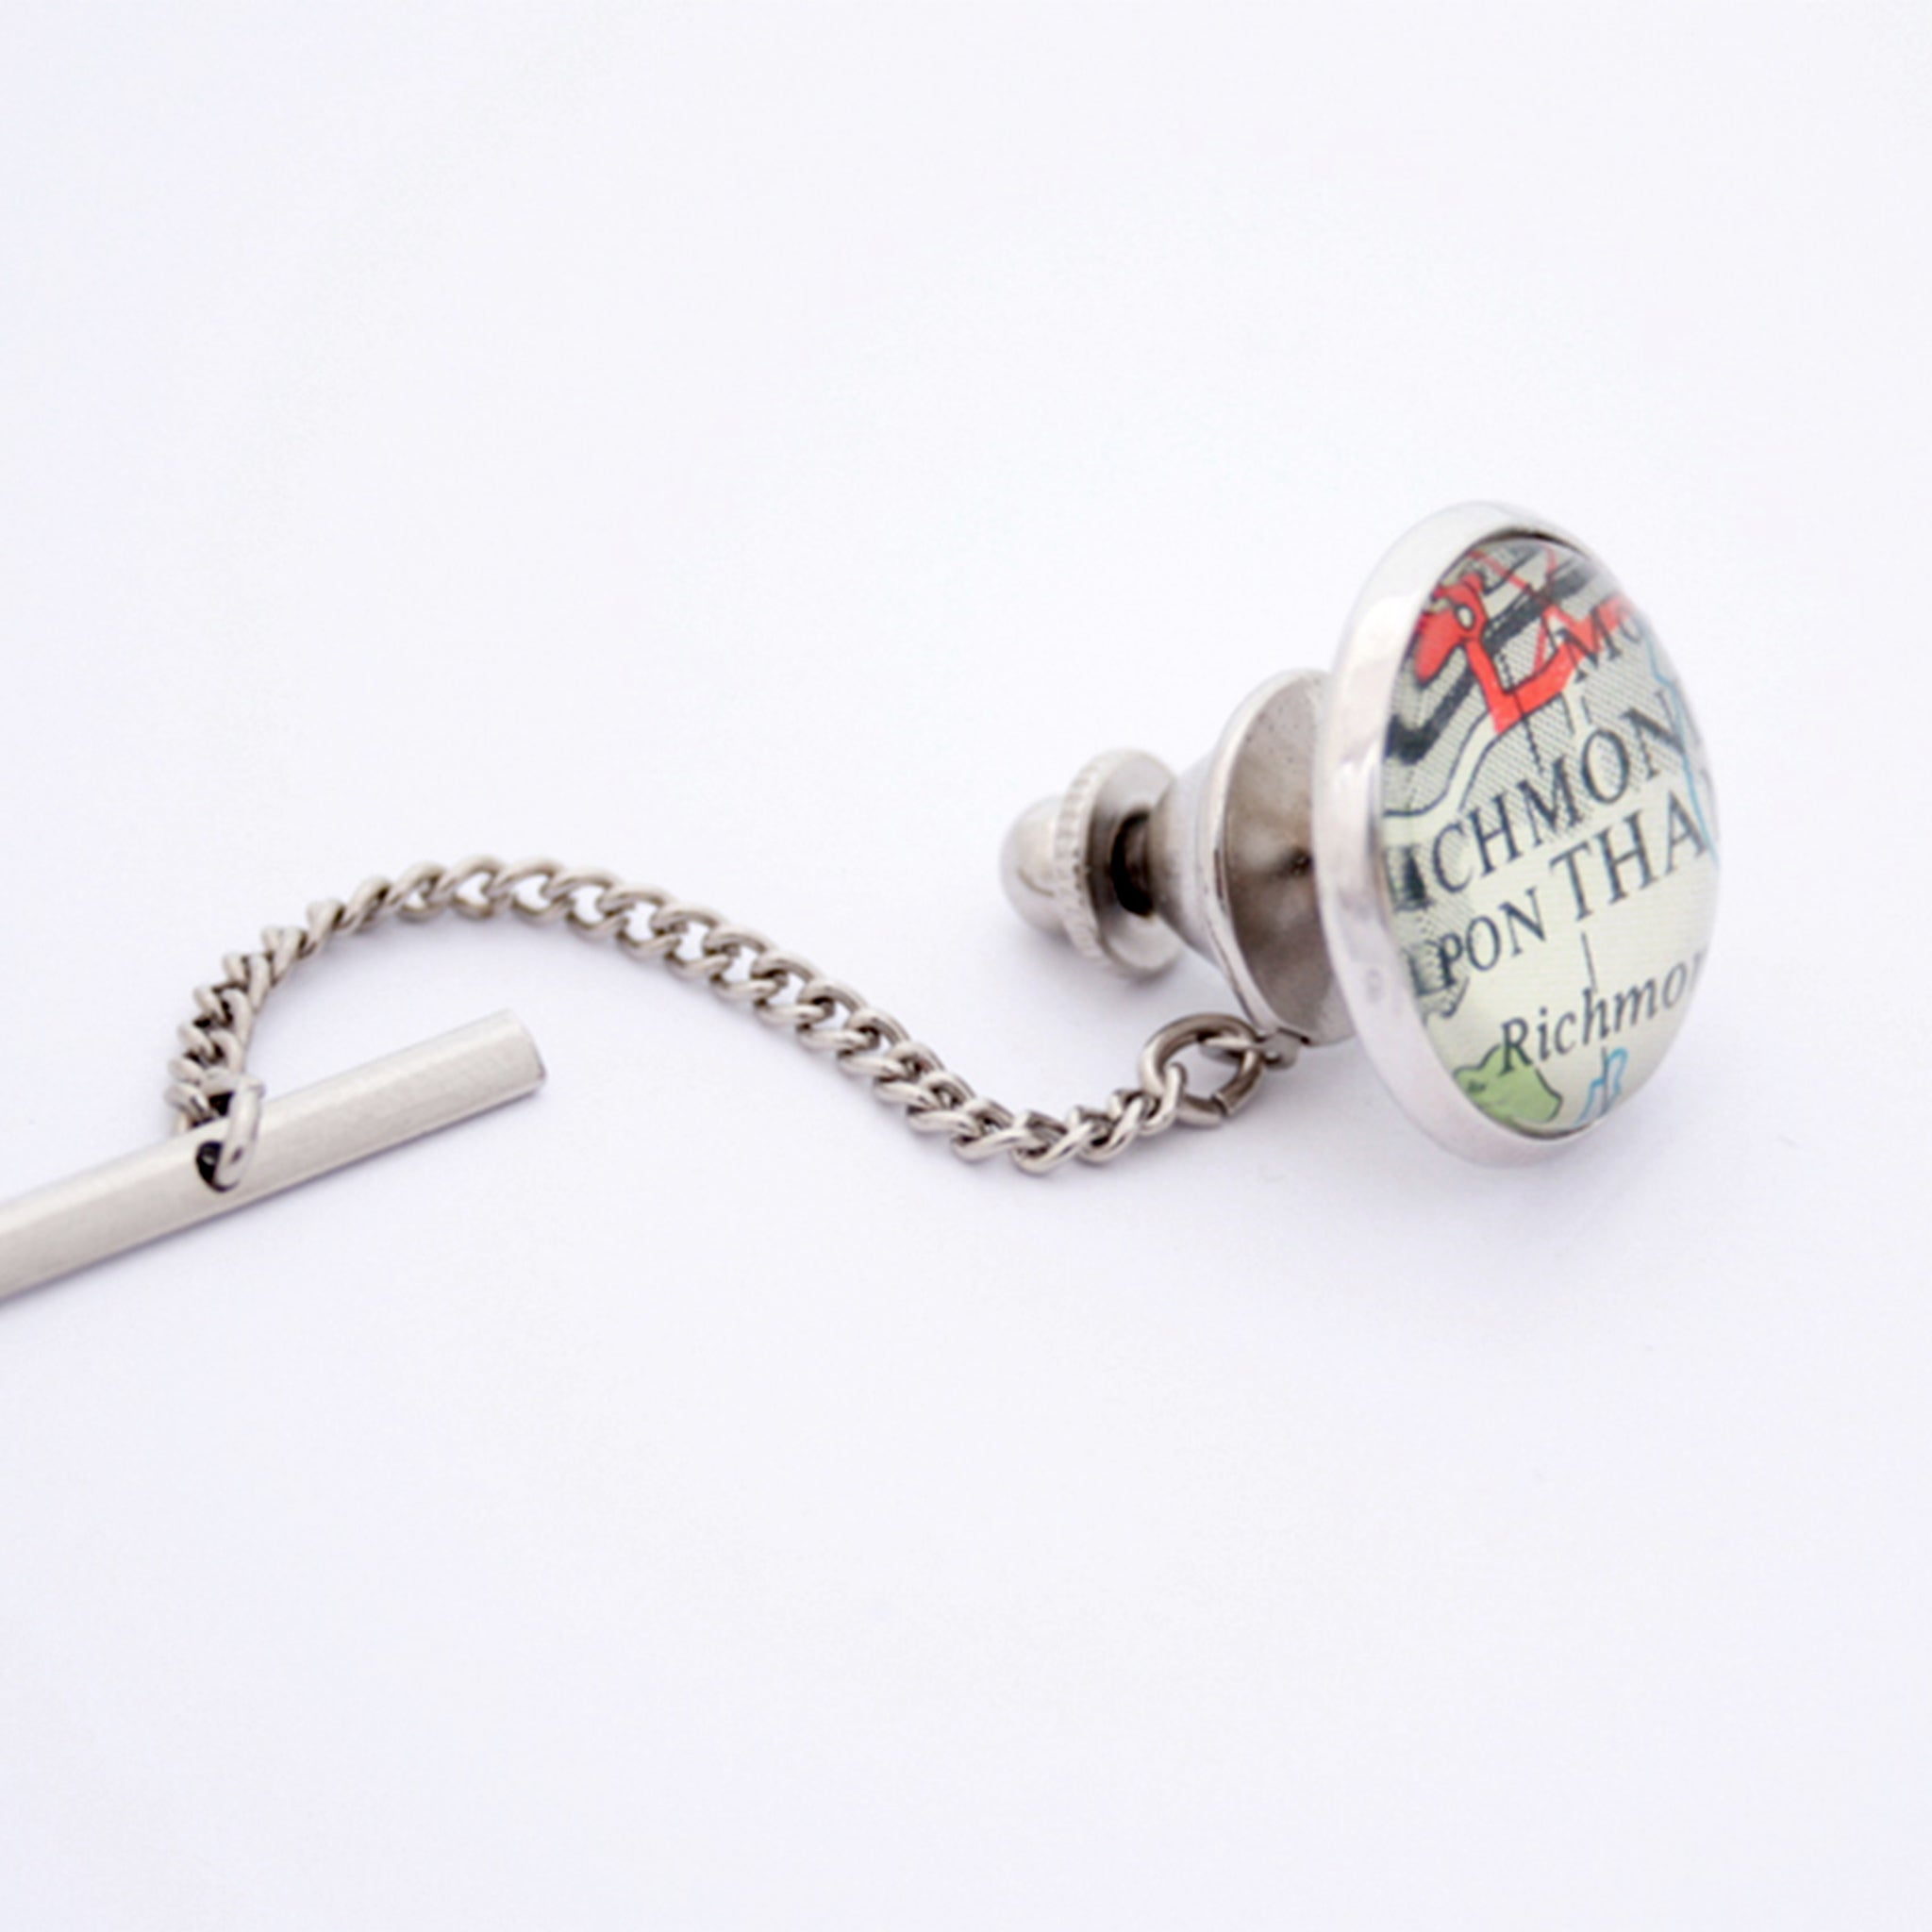 Personalised Tie Tack in silver colour featuring parts of London